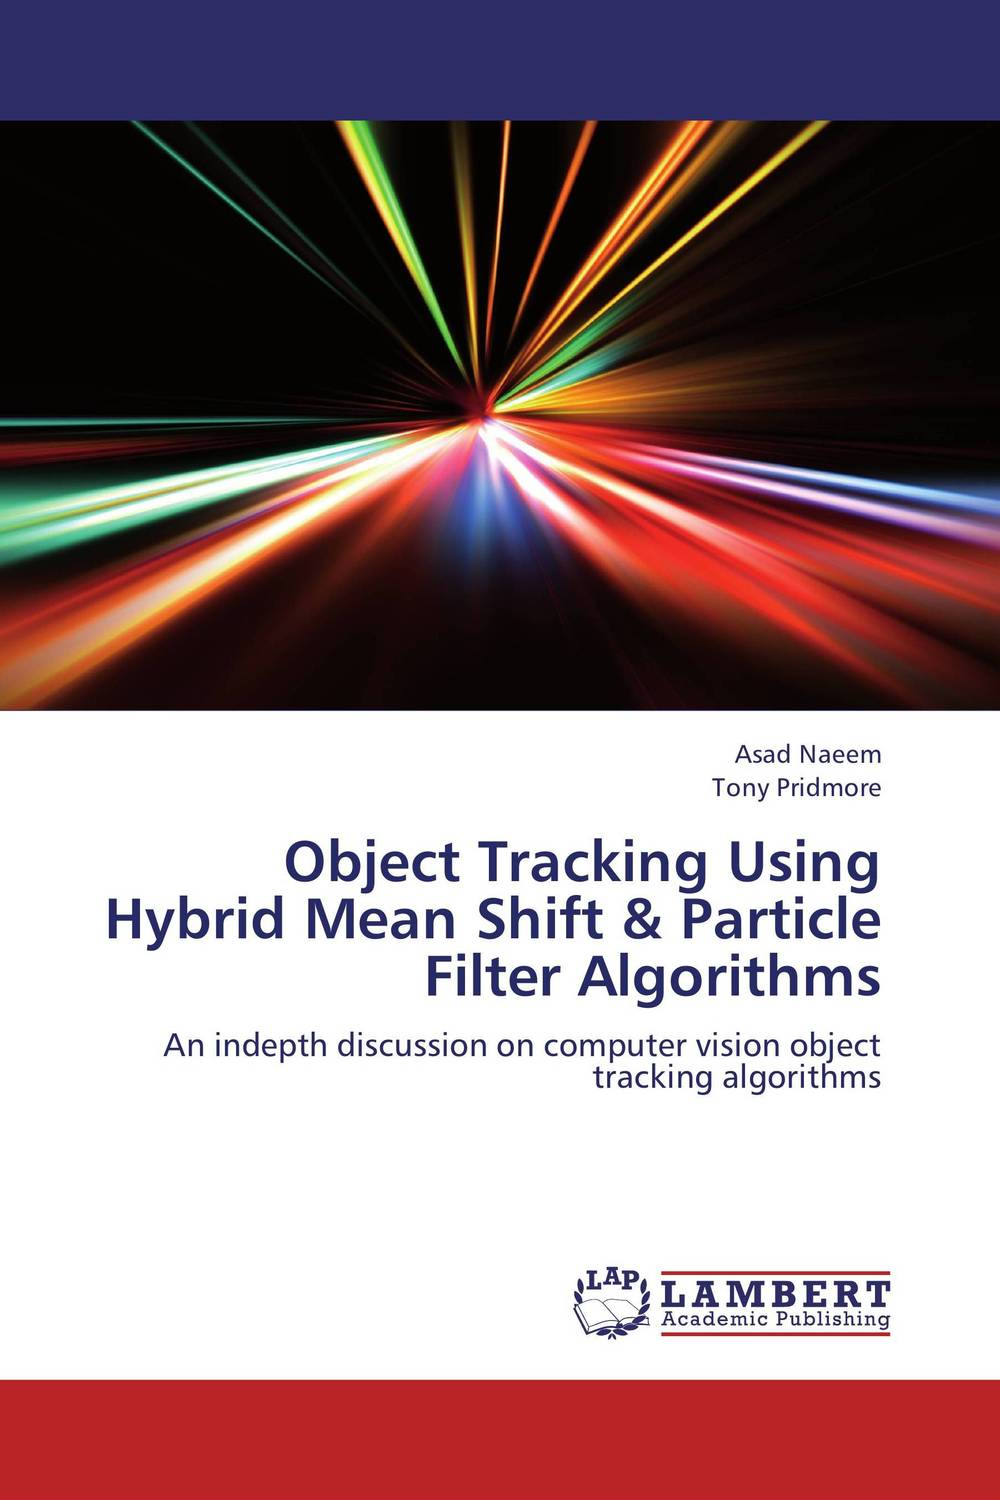 Object Tracking Using Hybrid Mean Shift & Particle Filter Algorithms video object tracking